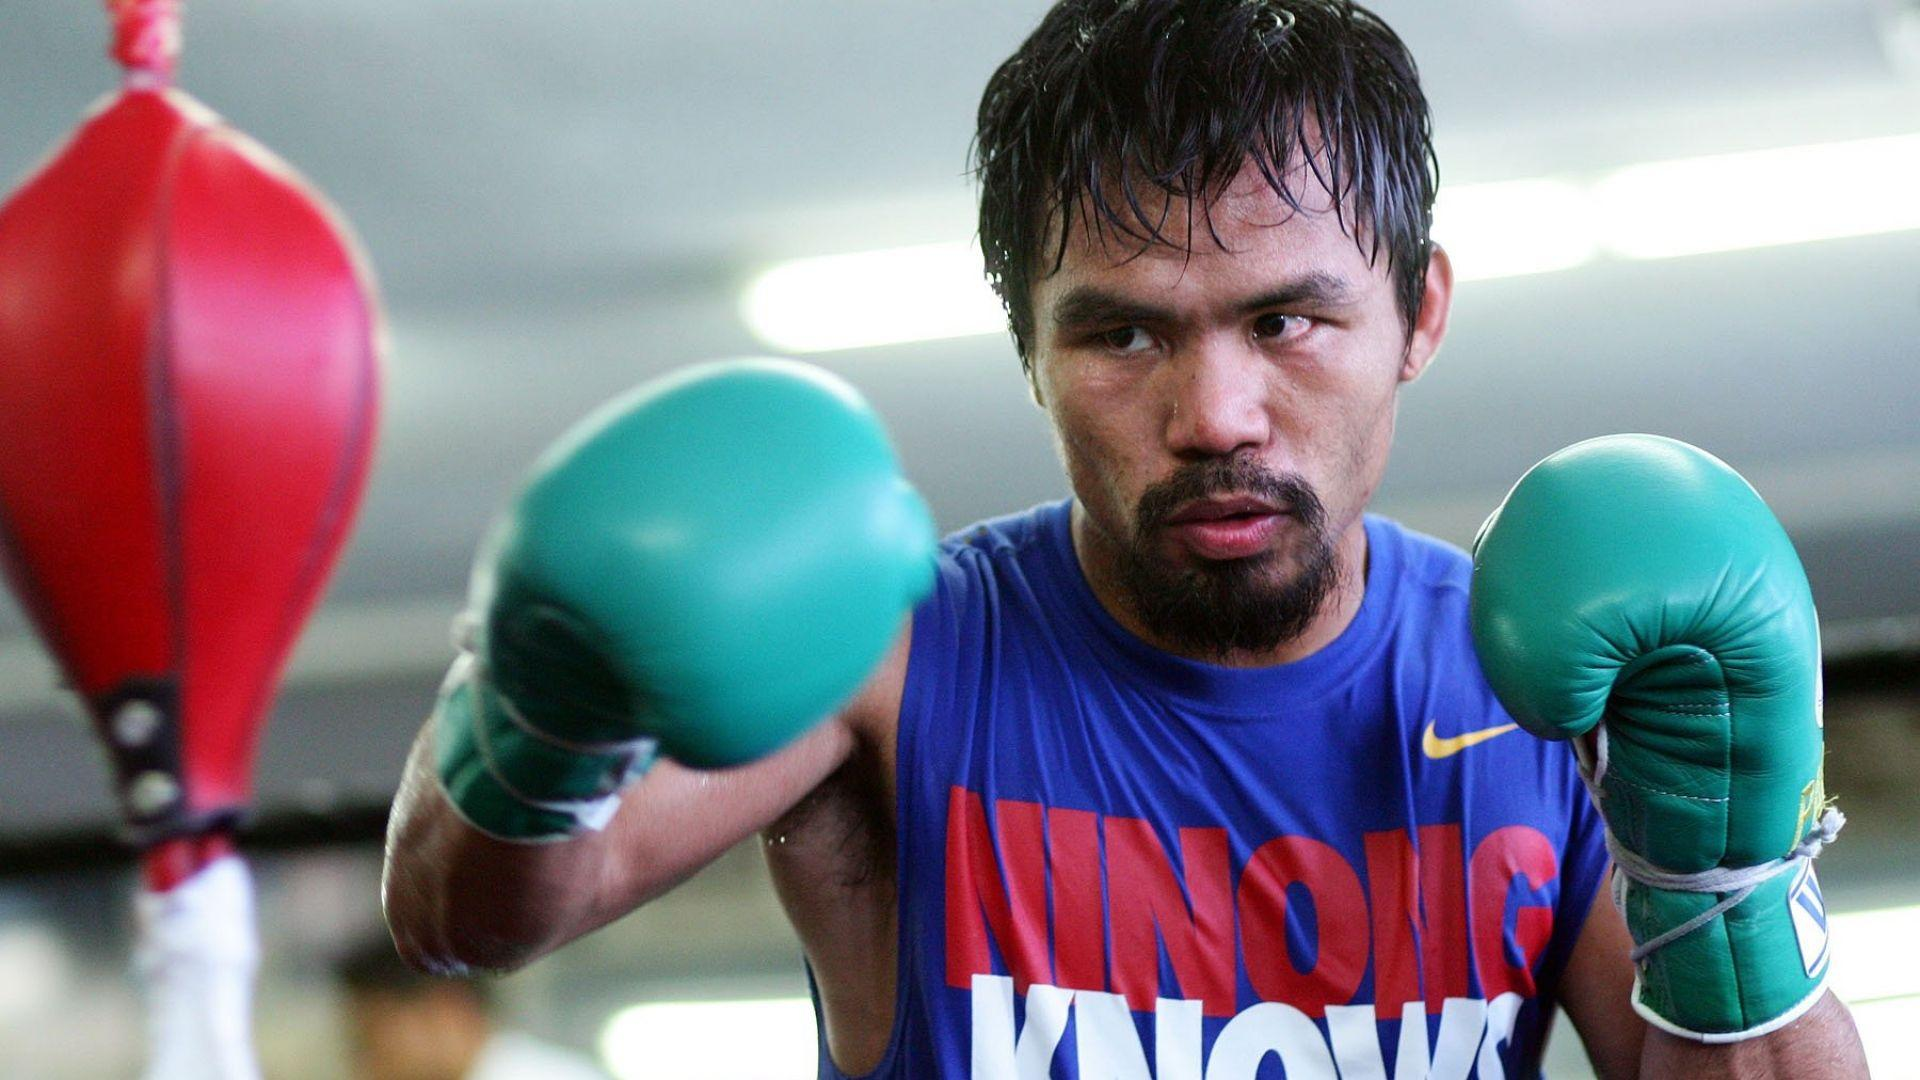 Full HD 1080p Manny pacquiao Wallpapers HD, Desktop Backgrounds